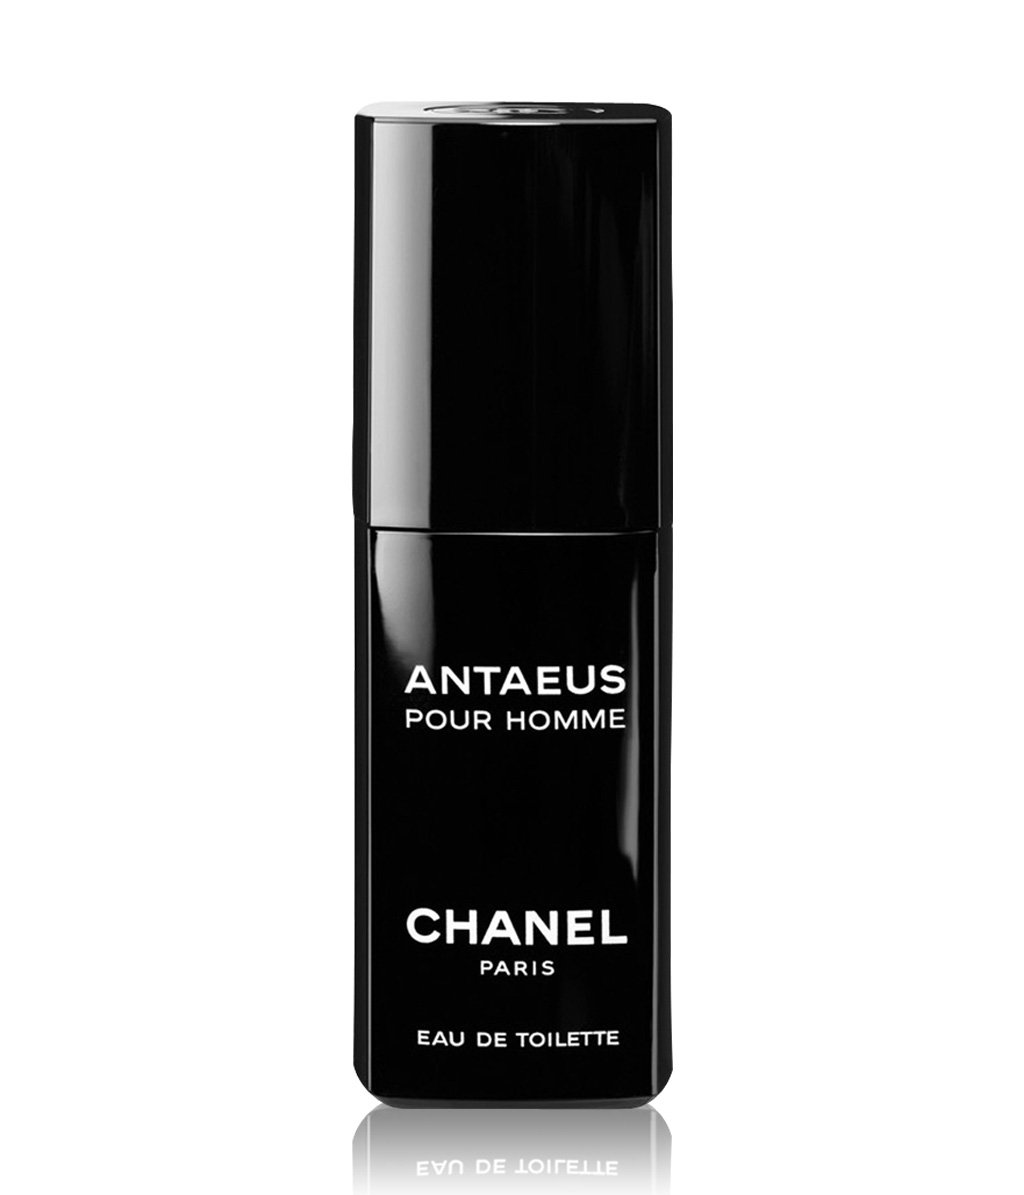 chanel antaeus parfum online bestellen flaconi. Black Bedroom Furniture Sets. Home Design Ideas